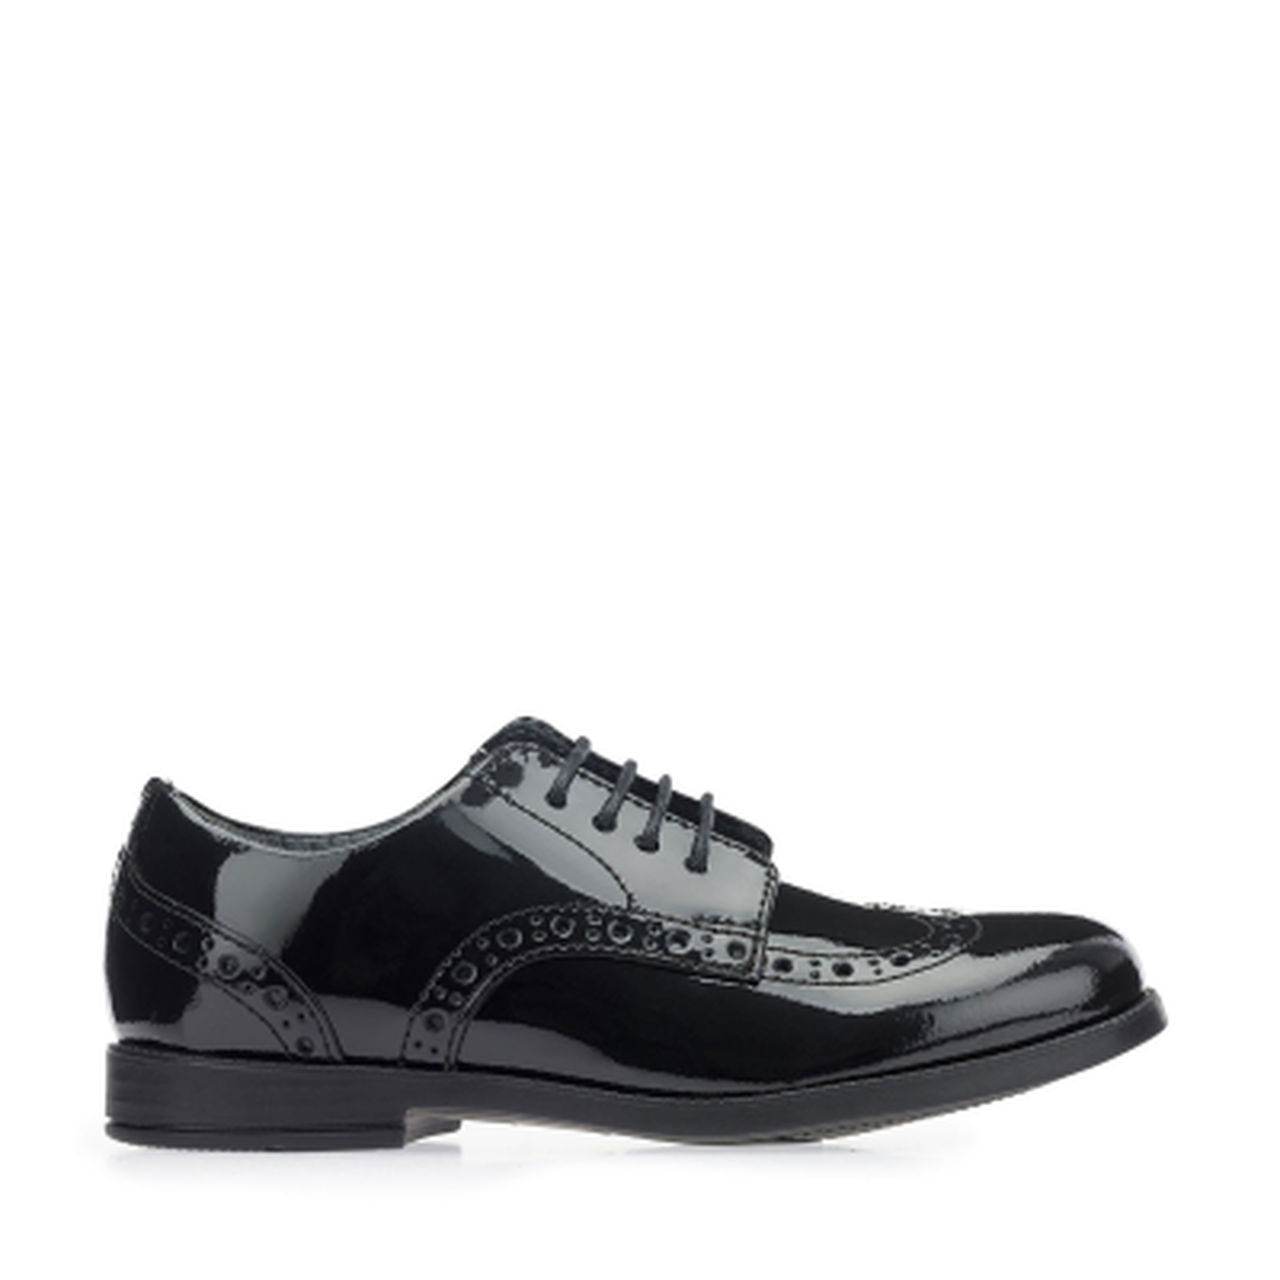 Start-rite Brogue SNR Girls Black Patent Shoe